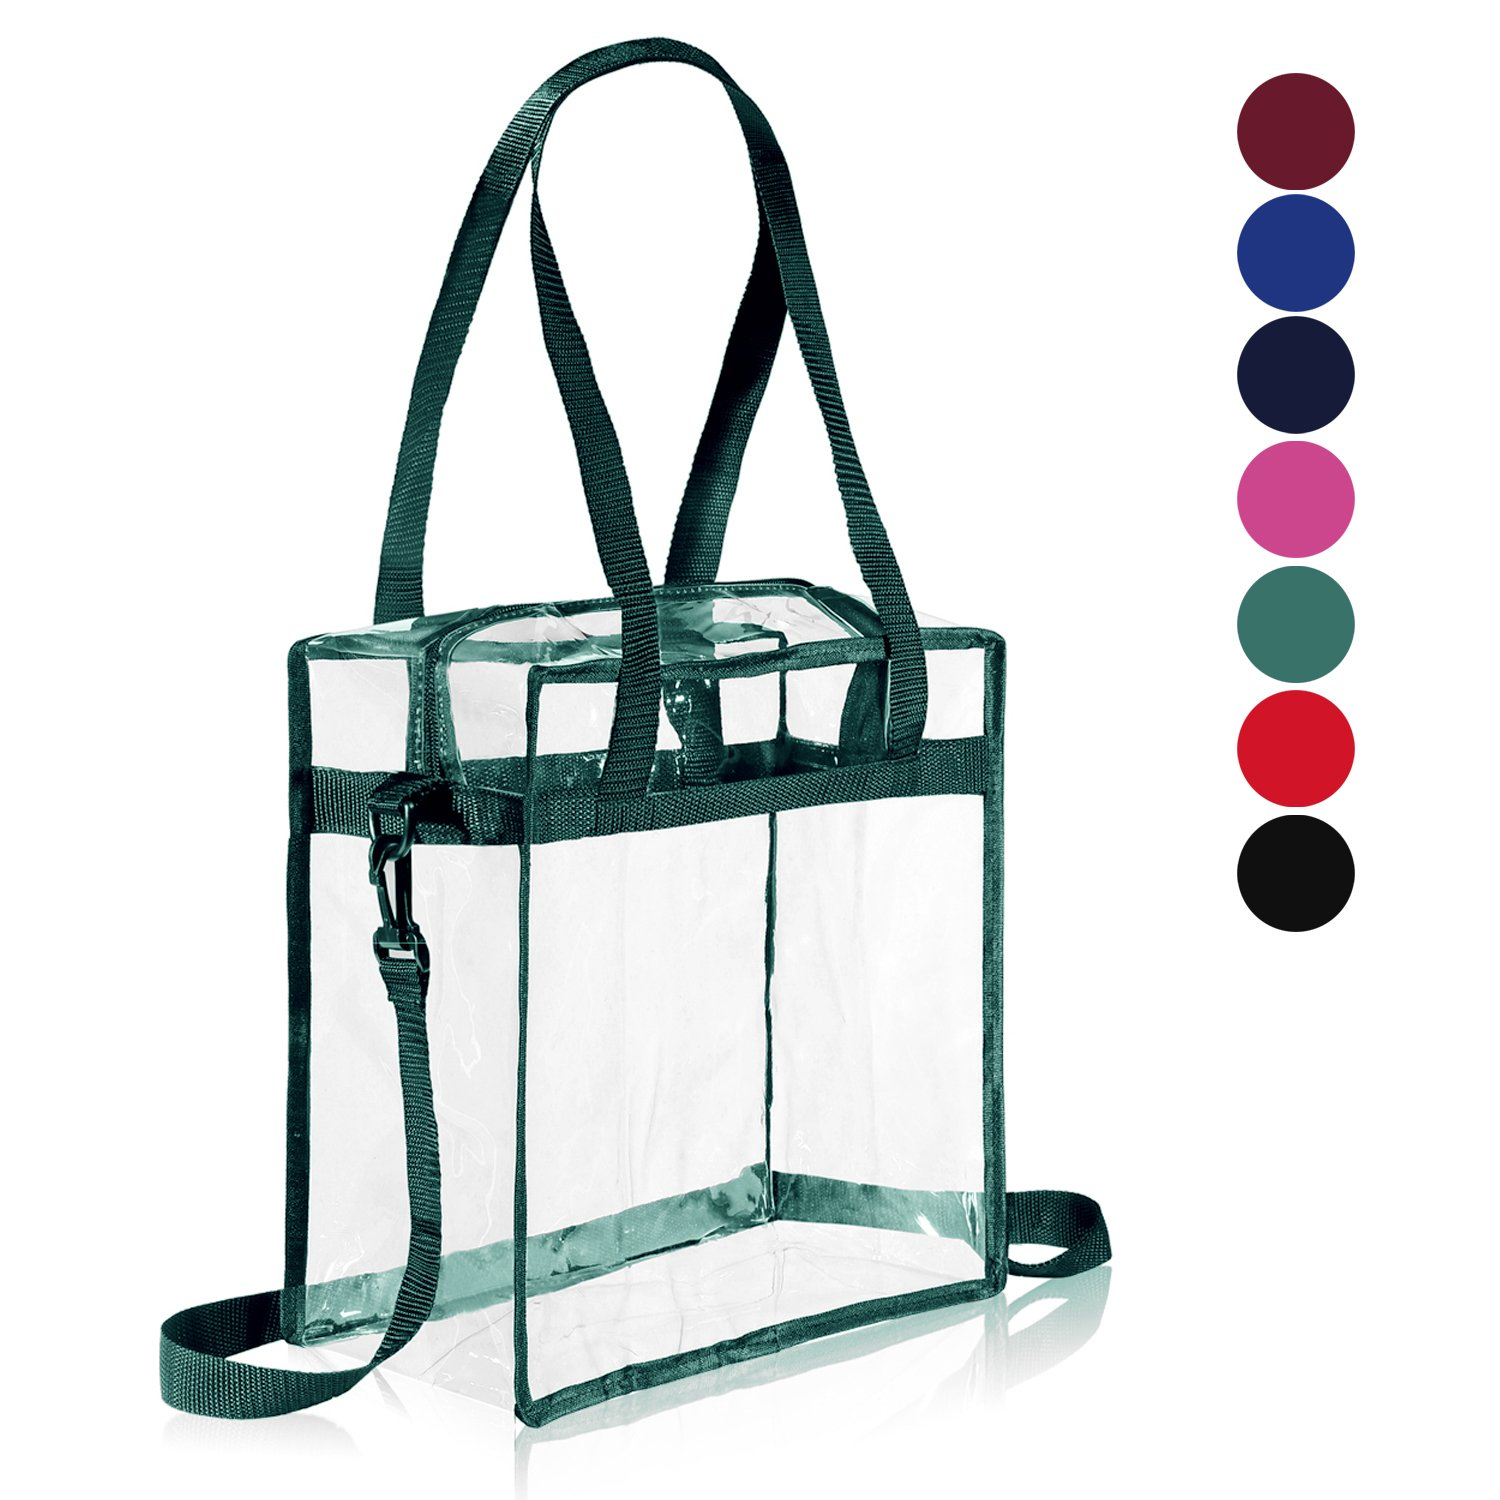 """Clear Bag NFL & PGA Stadium Approved - The Clear Tote Bag with Zipper Closure is Perfect for Work, Sports Games.Cross-Body Messenger Shoulder Bag w Adjustable Strap -12"""" X 12"""" X 6"""" (Green)"""